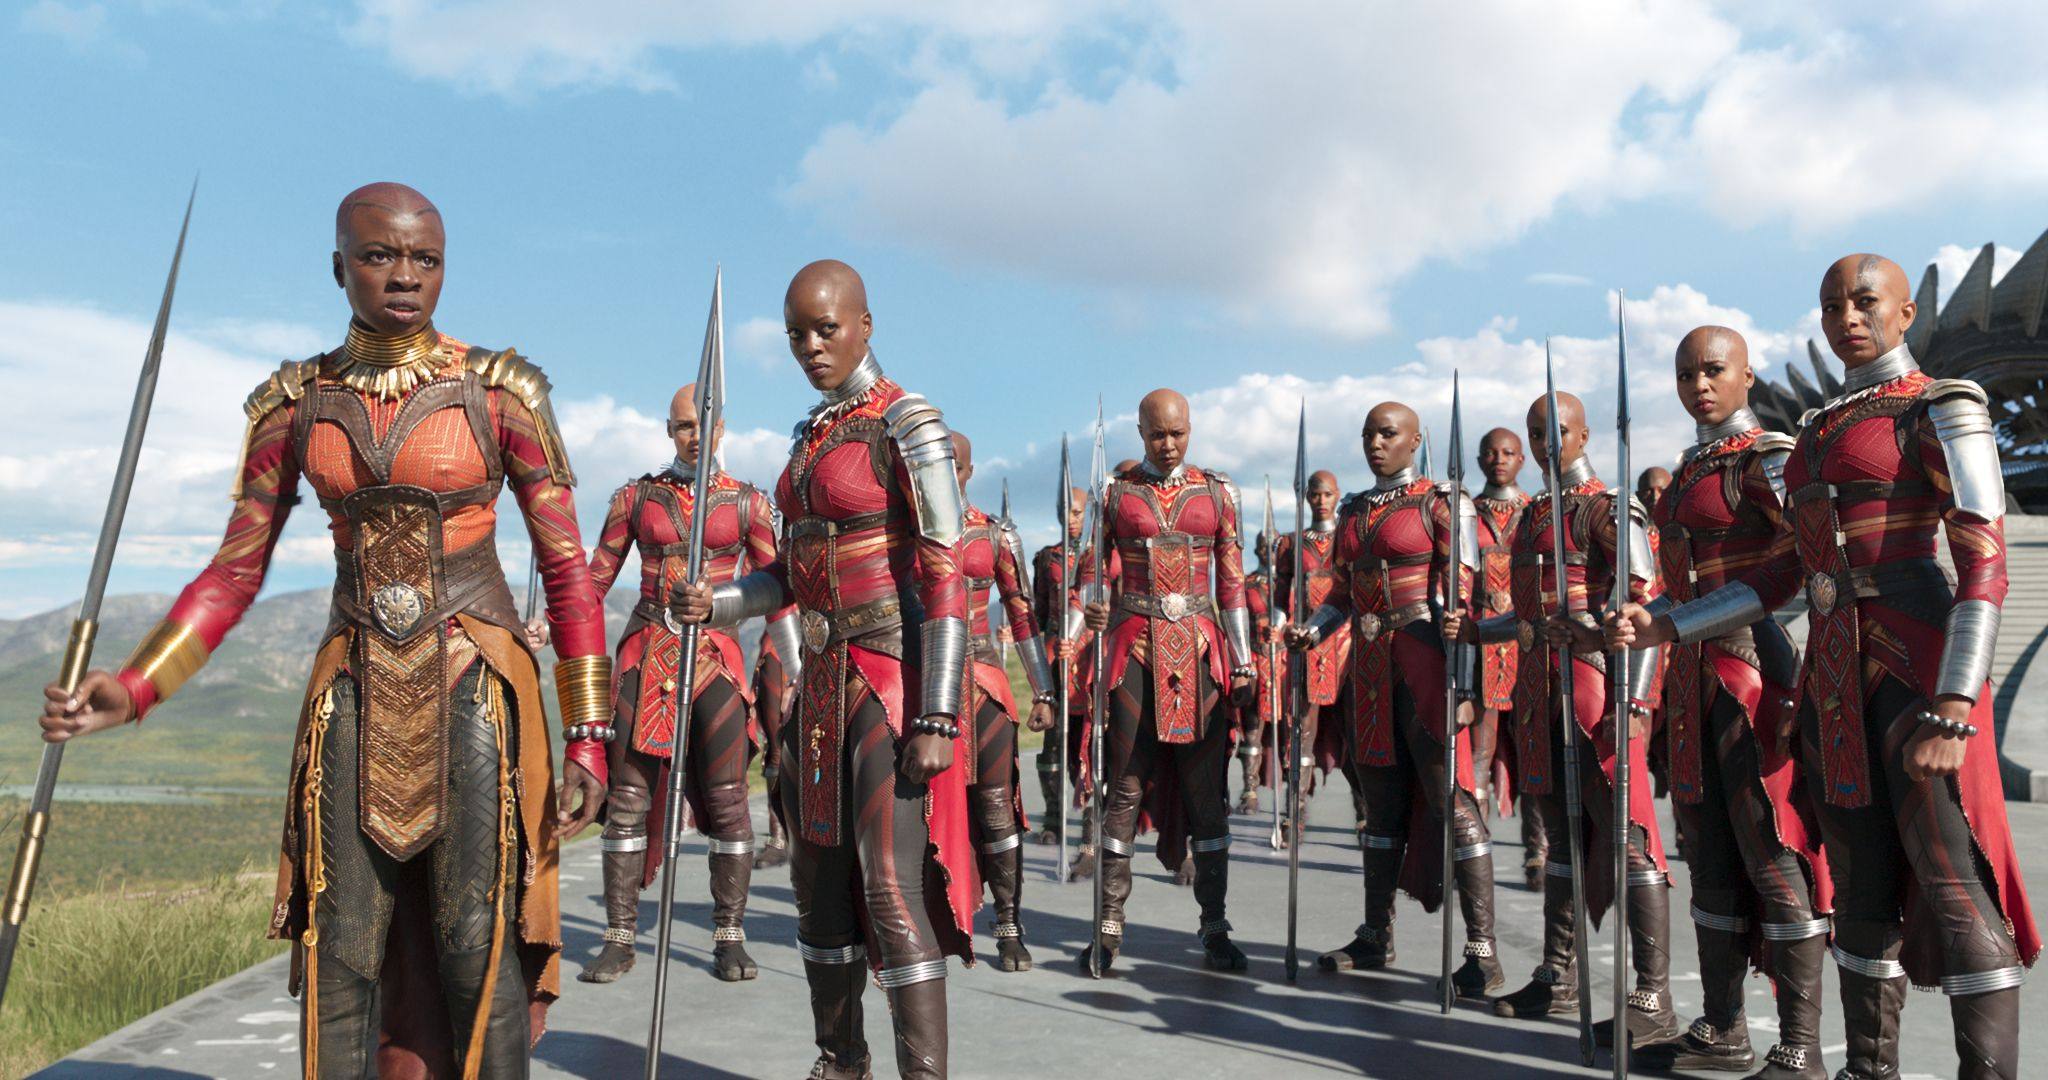 'Black Panther' is top grossing Feb movie ever released